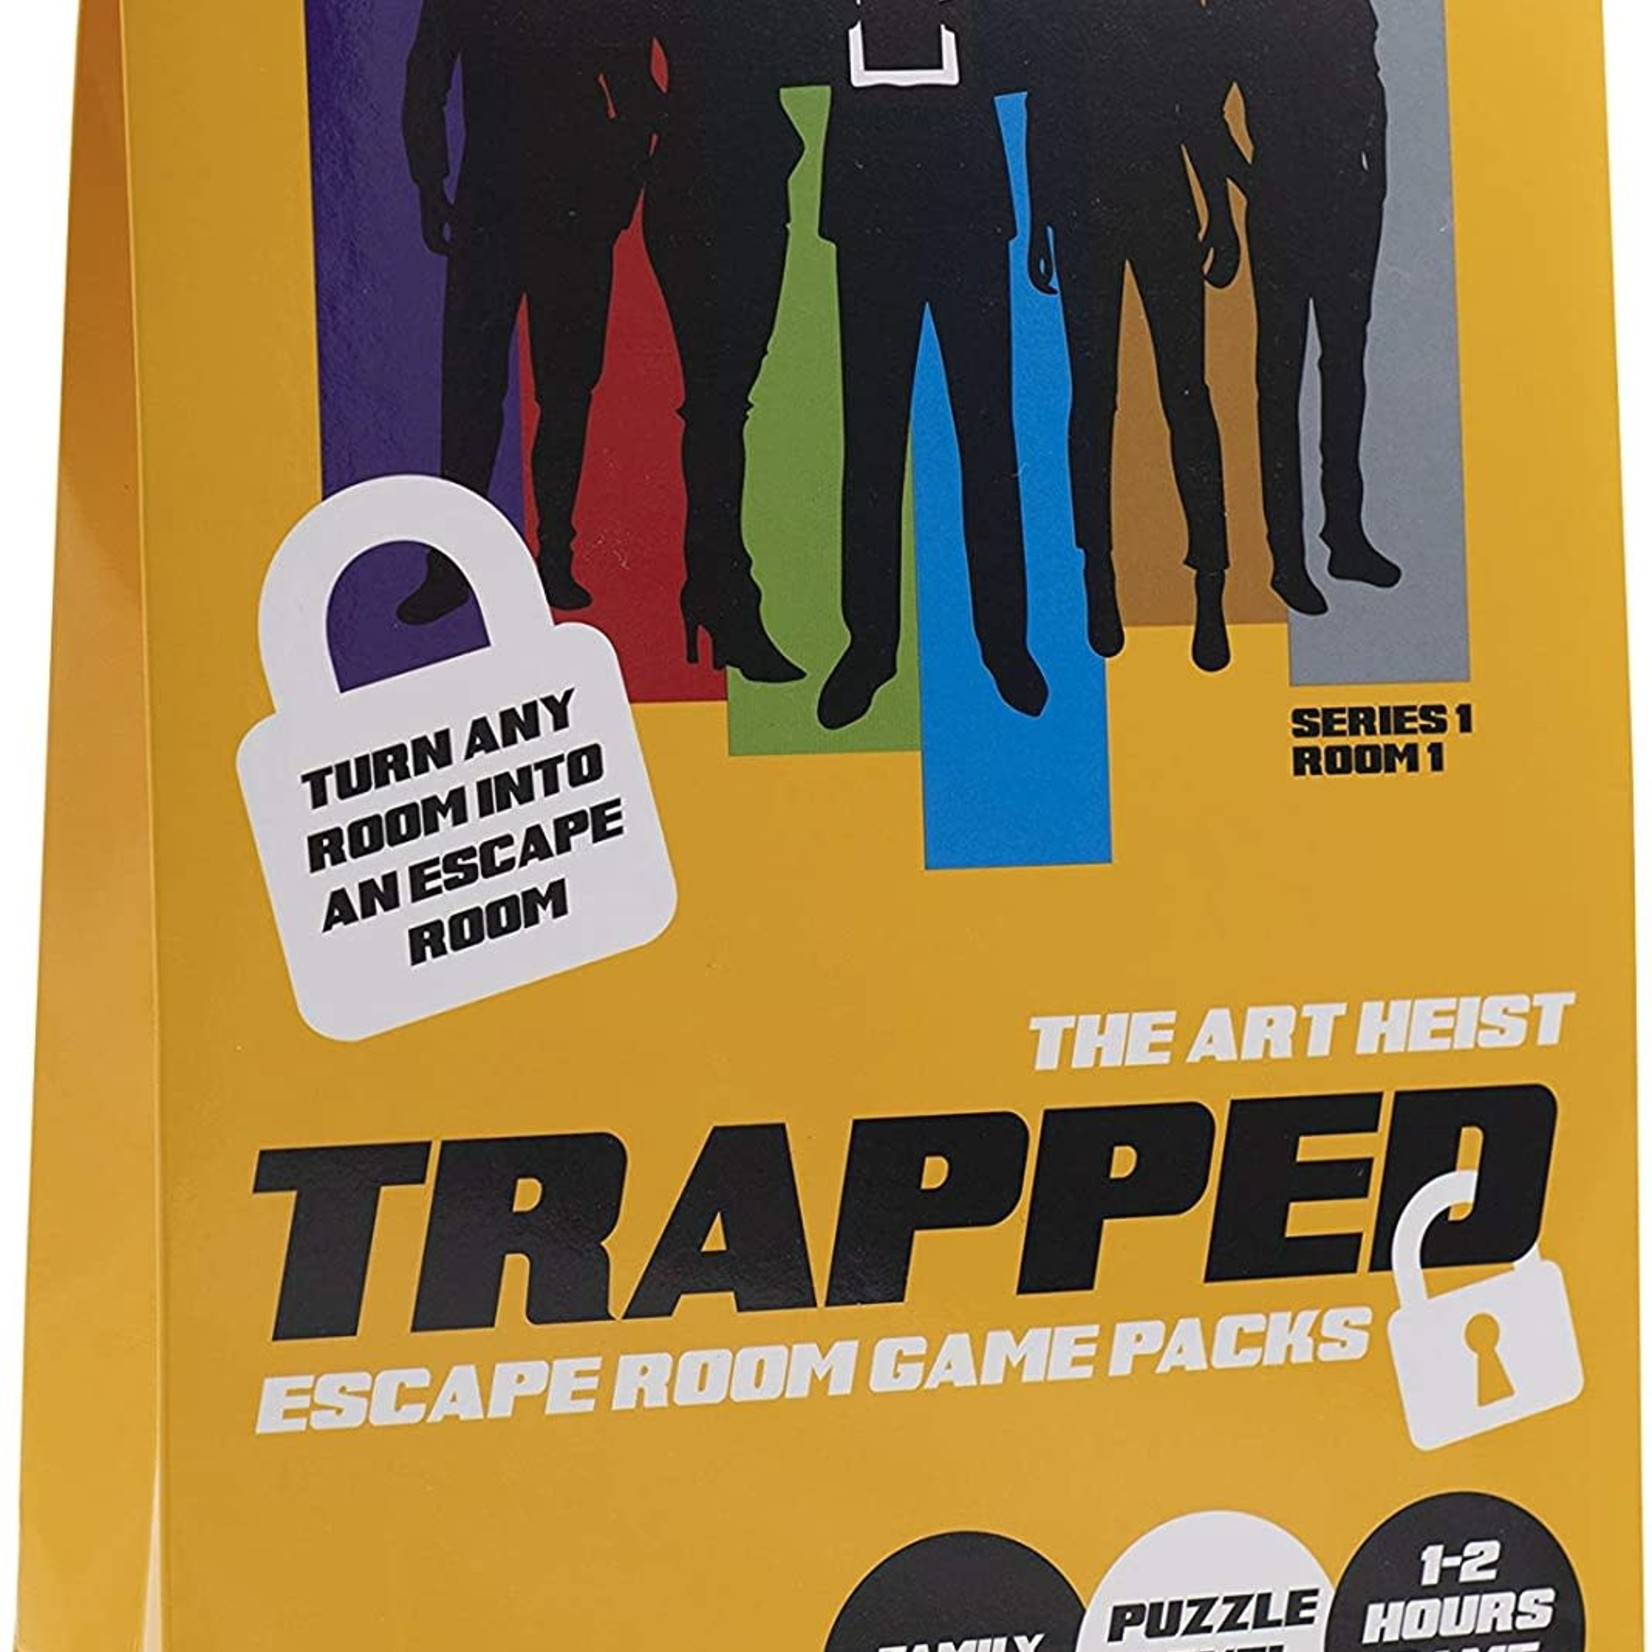 Solid Roots Trapped - The Art Heist